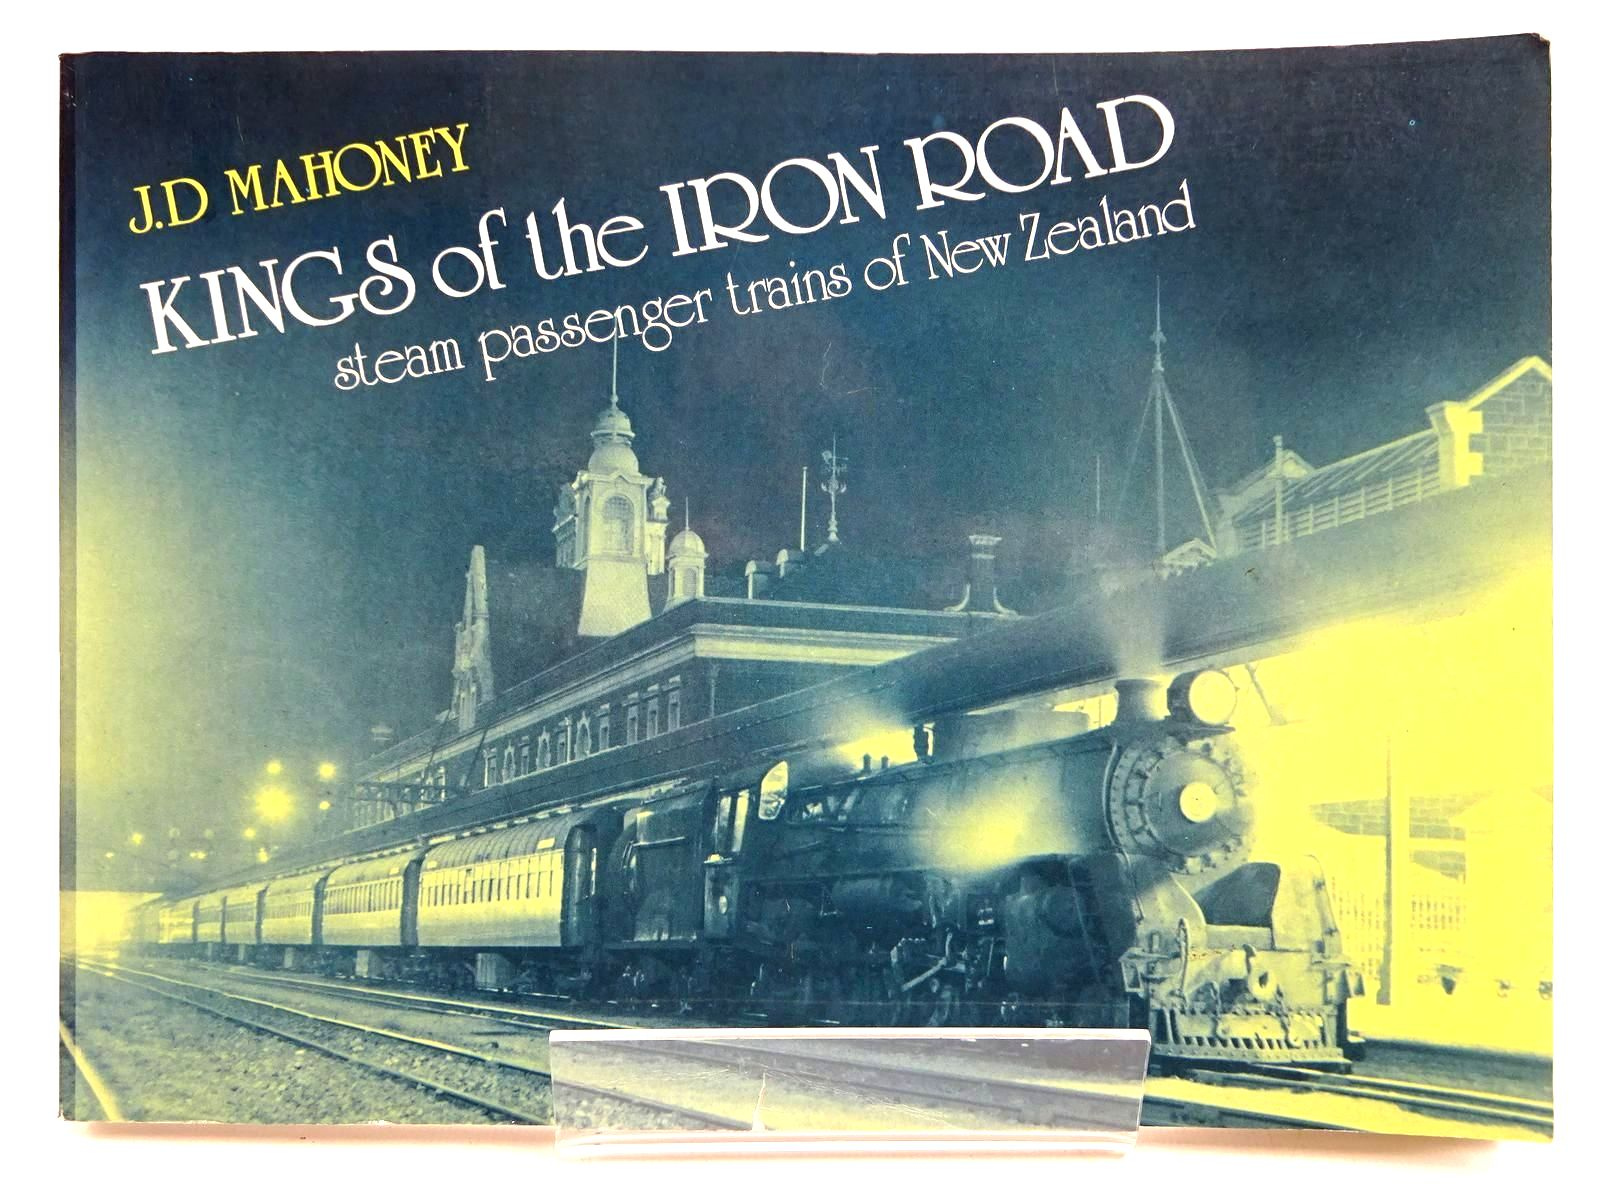 Photo of KINGS OF THE IRON ROAD STEAM PASSENGER TRAINS OF NEW ZEALAND written by Mahoney, J.D. published by The Dunmore Press (STOCK CODE: 2131472)  for sale by Stella & Rose's Books